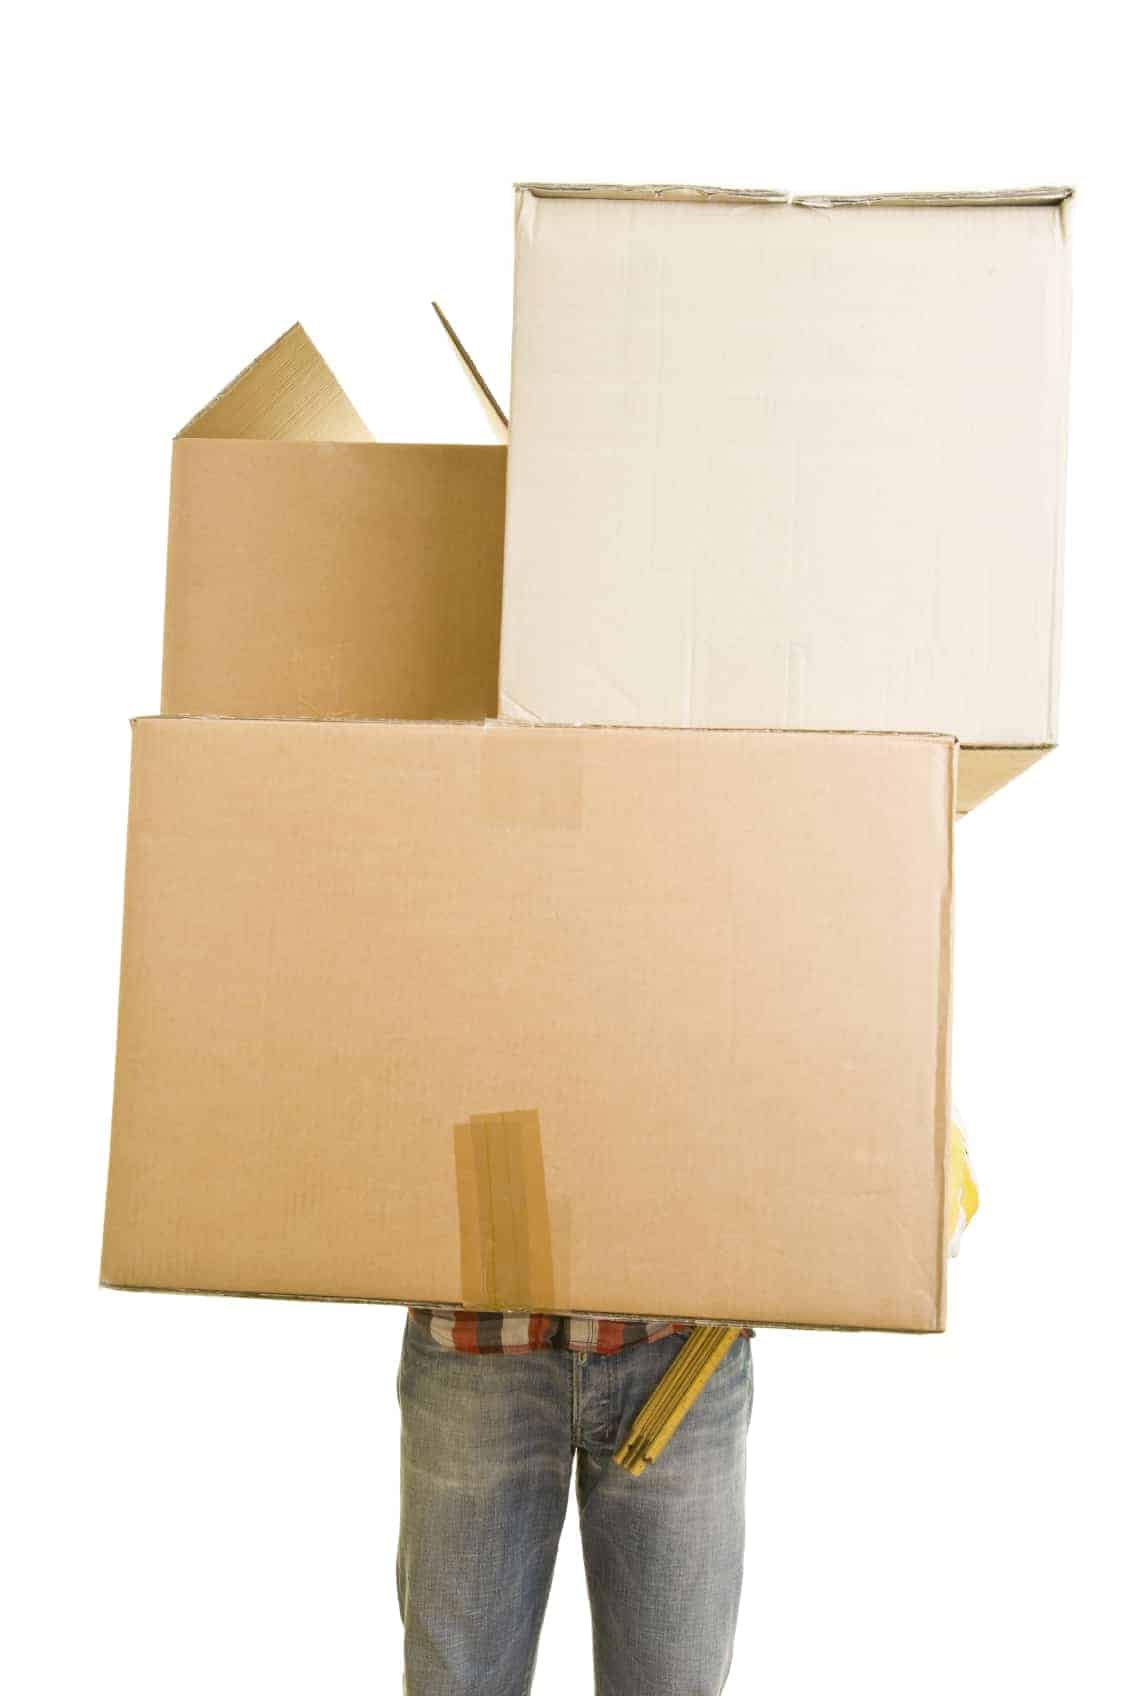 packing paper for moving Shop moving supplies - free expedited shipping on all orders – we r cheapest or the supplies r free - 100% buy back of unused items - 90 day returns.